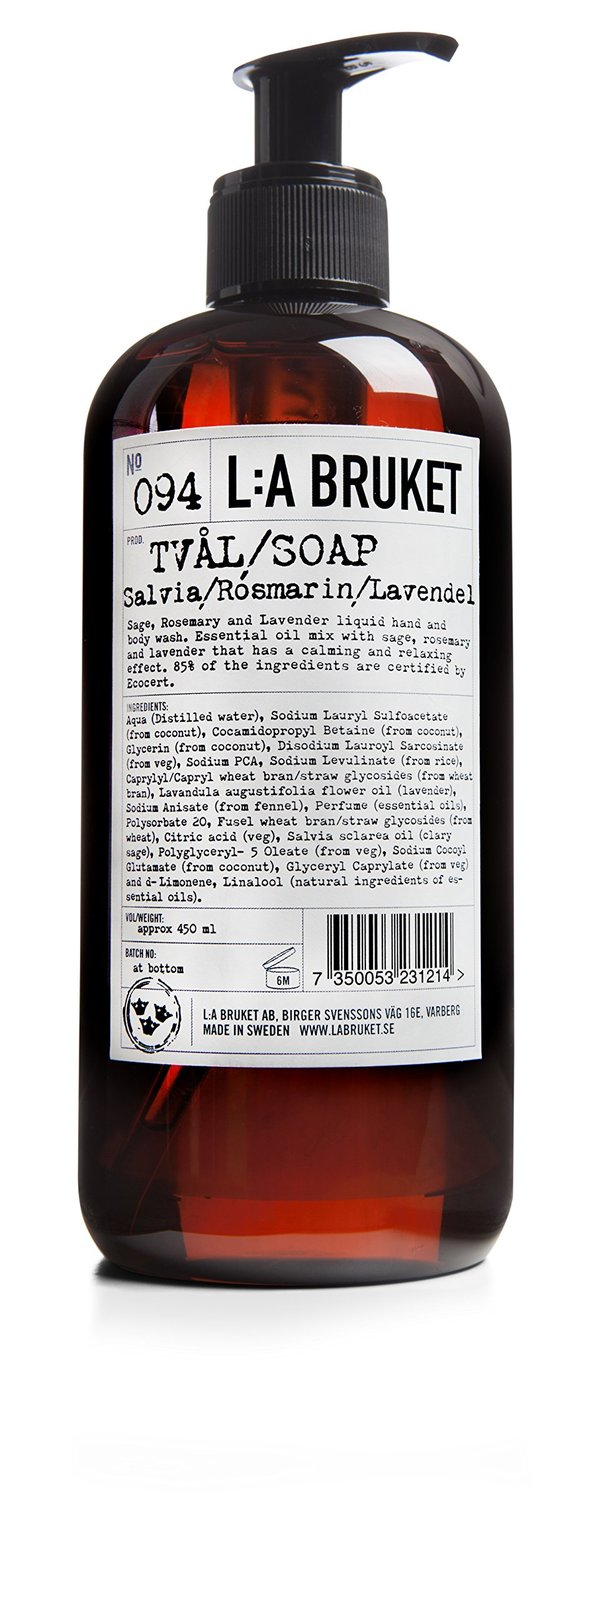 No. 094 Sage/Rosemary/Lavender Liquid Soap 450 ml by L:A Bruket